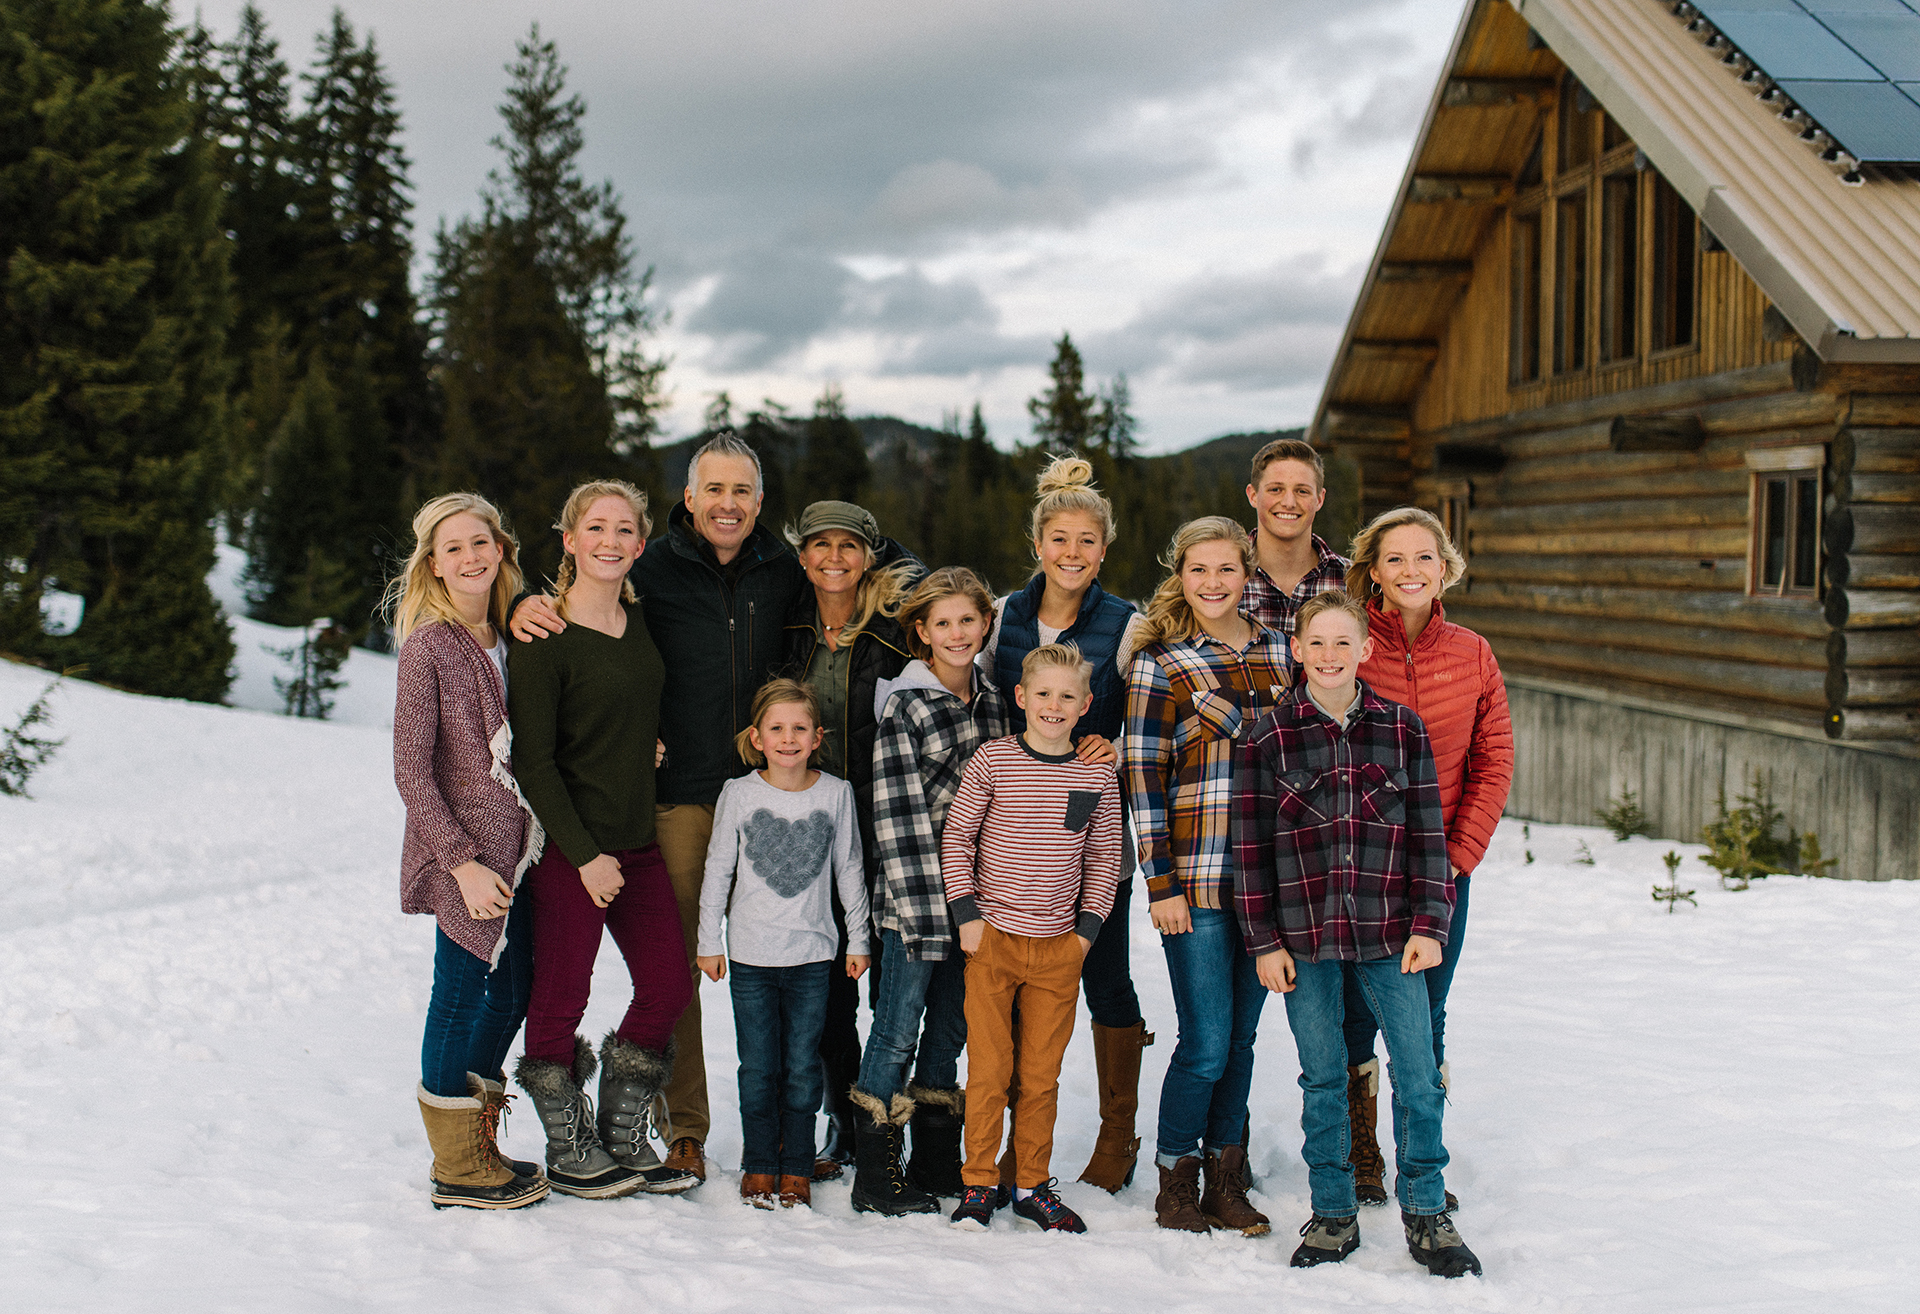 About The Big Ski Family